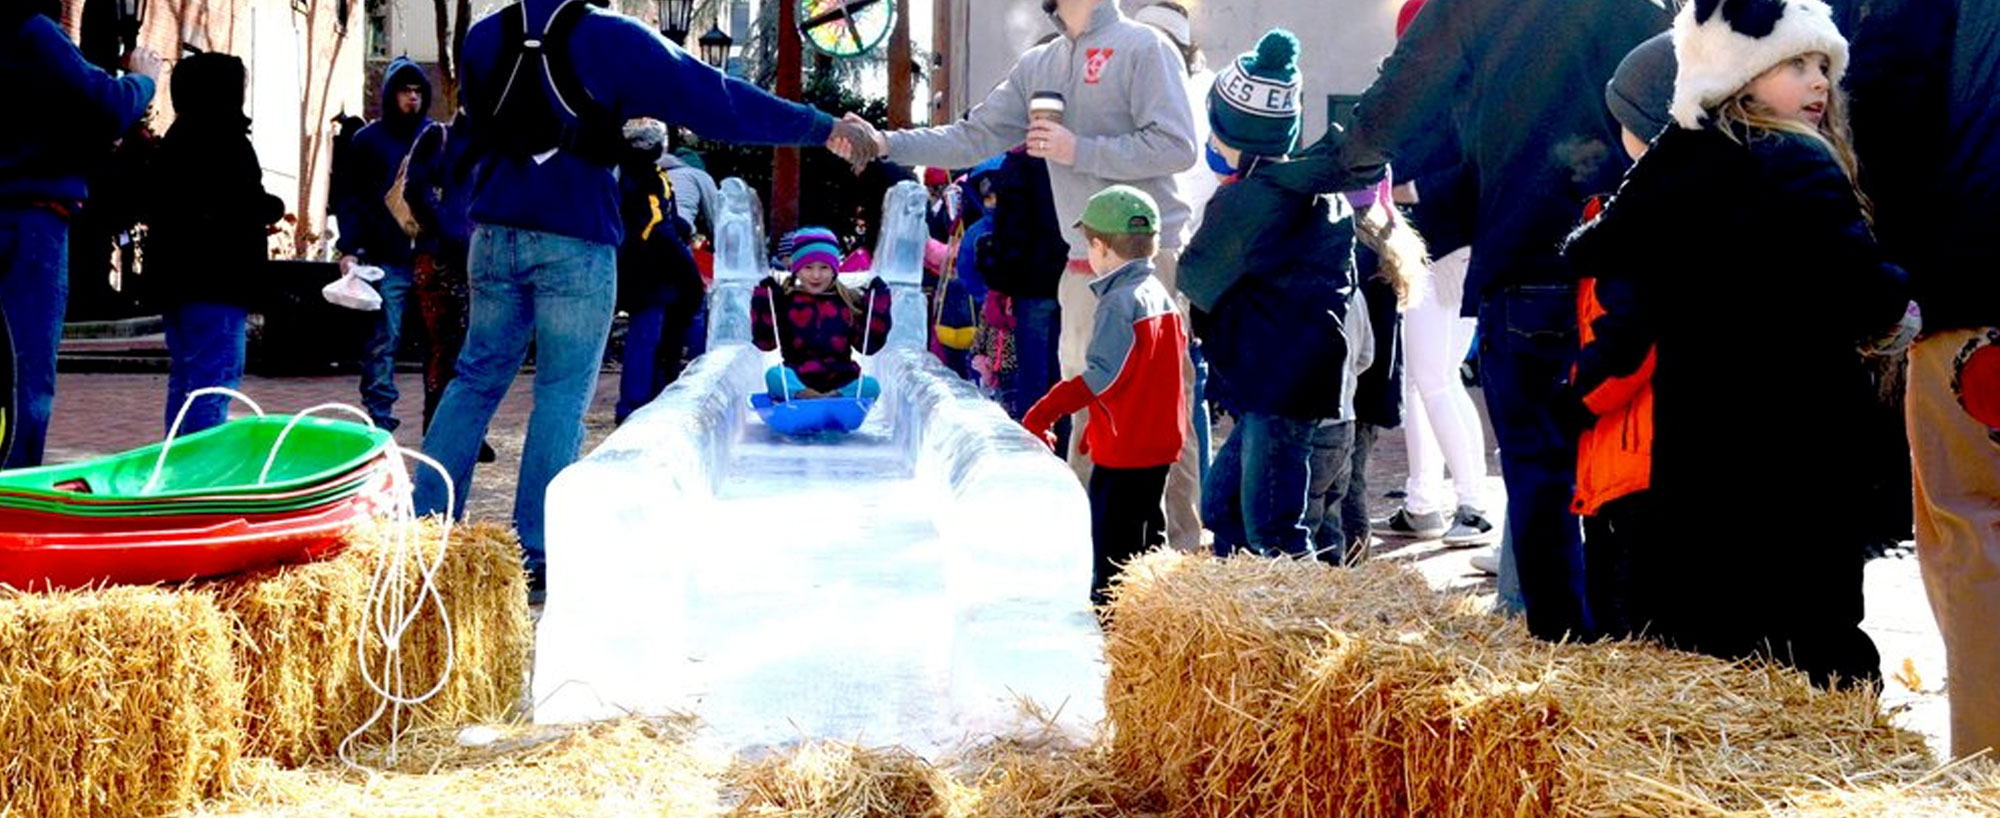 a young child sledding on an ice sculpture at a fun gathering